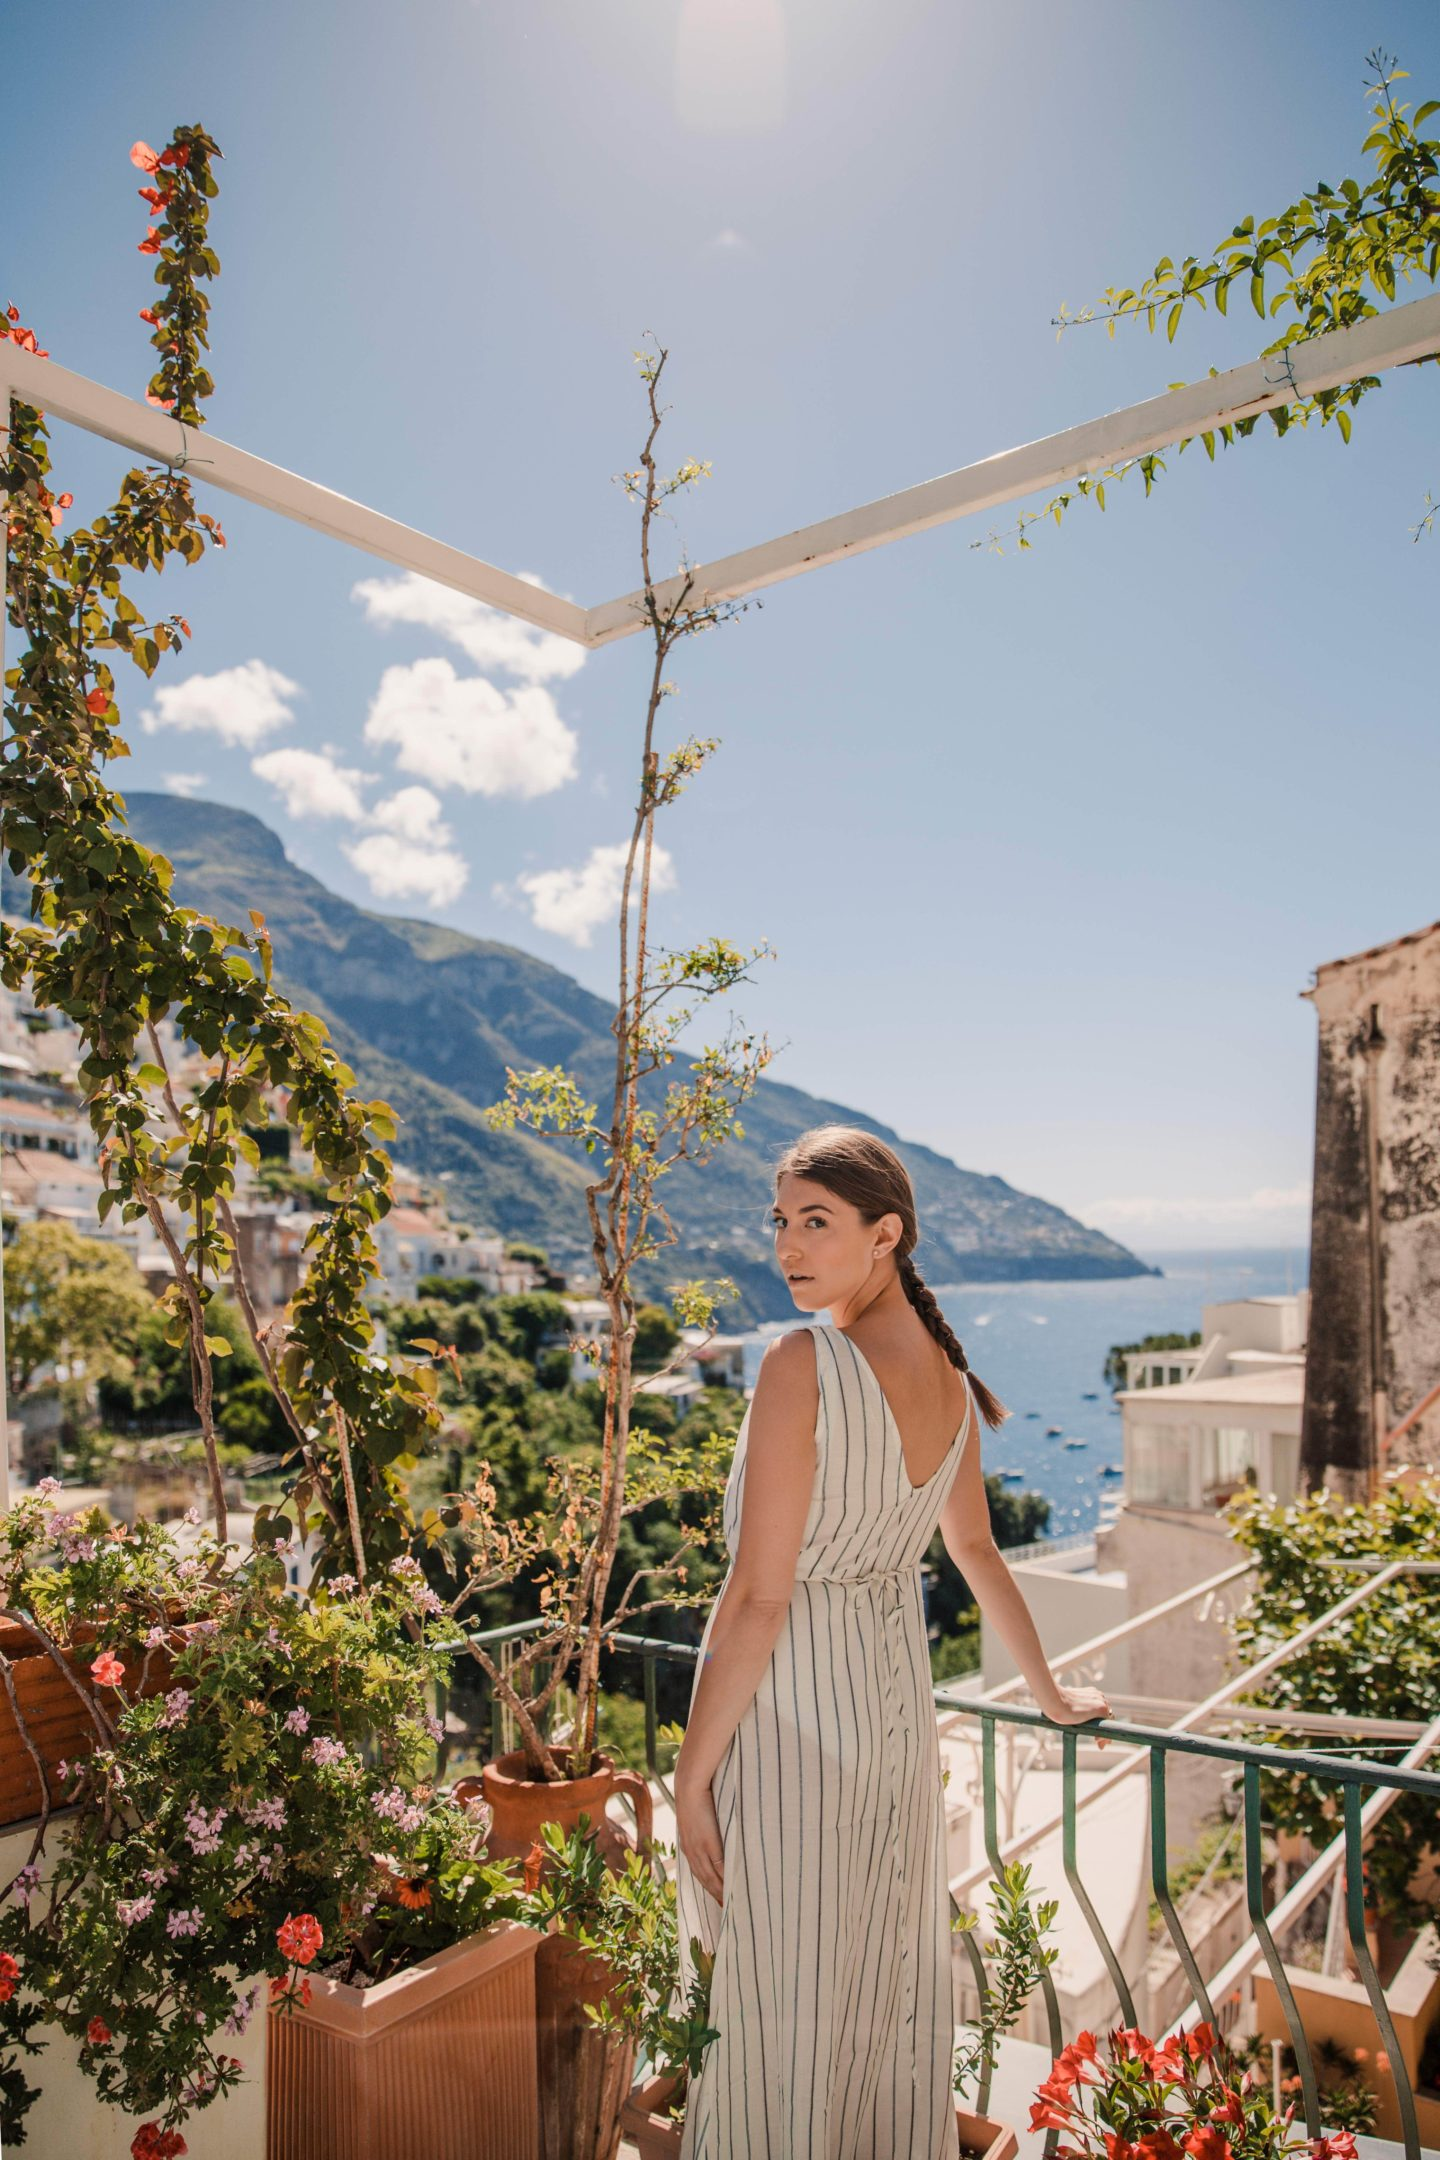 Ultimate 4 Day Positano Italy Travel Itinerary | What to See & Where to Eat: Venus Bed & Breakfast Positano